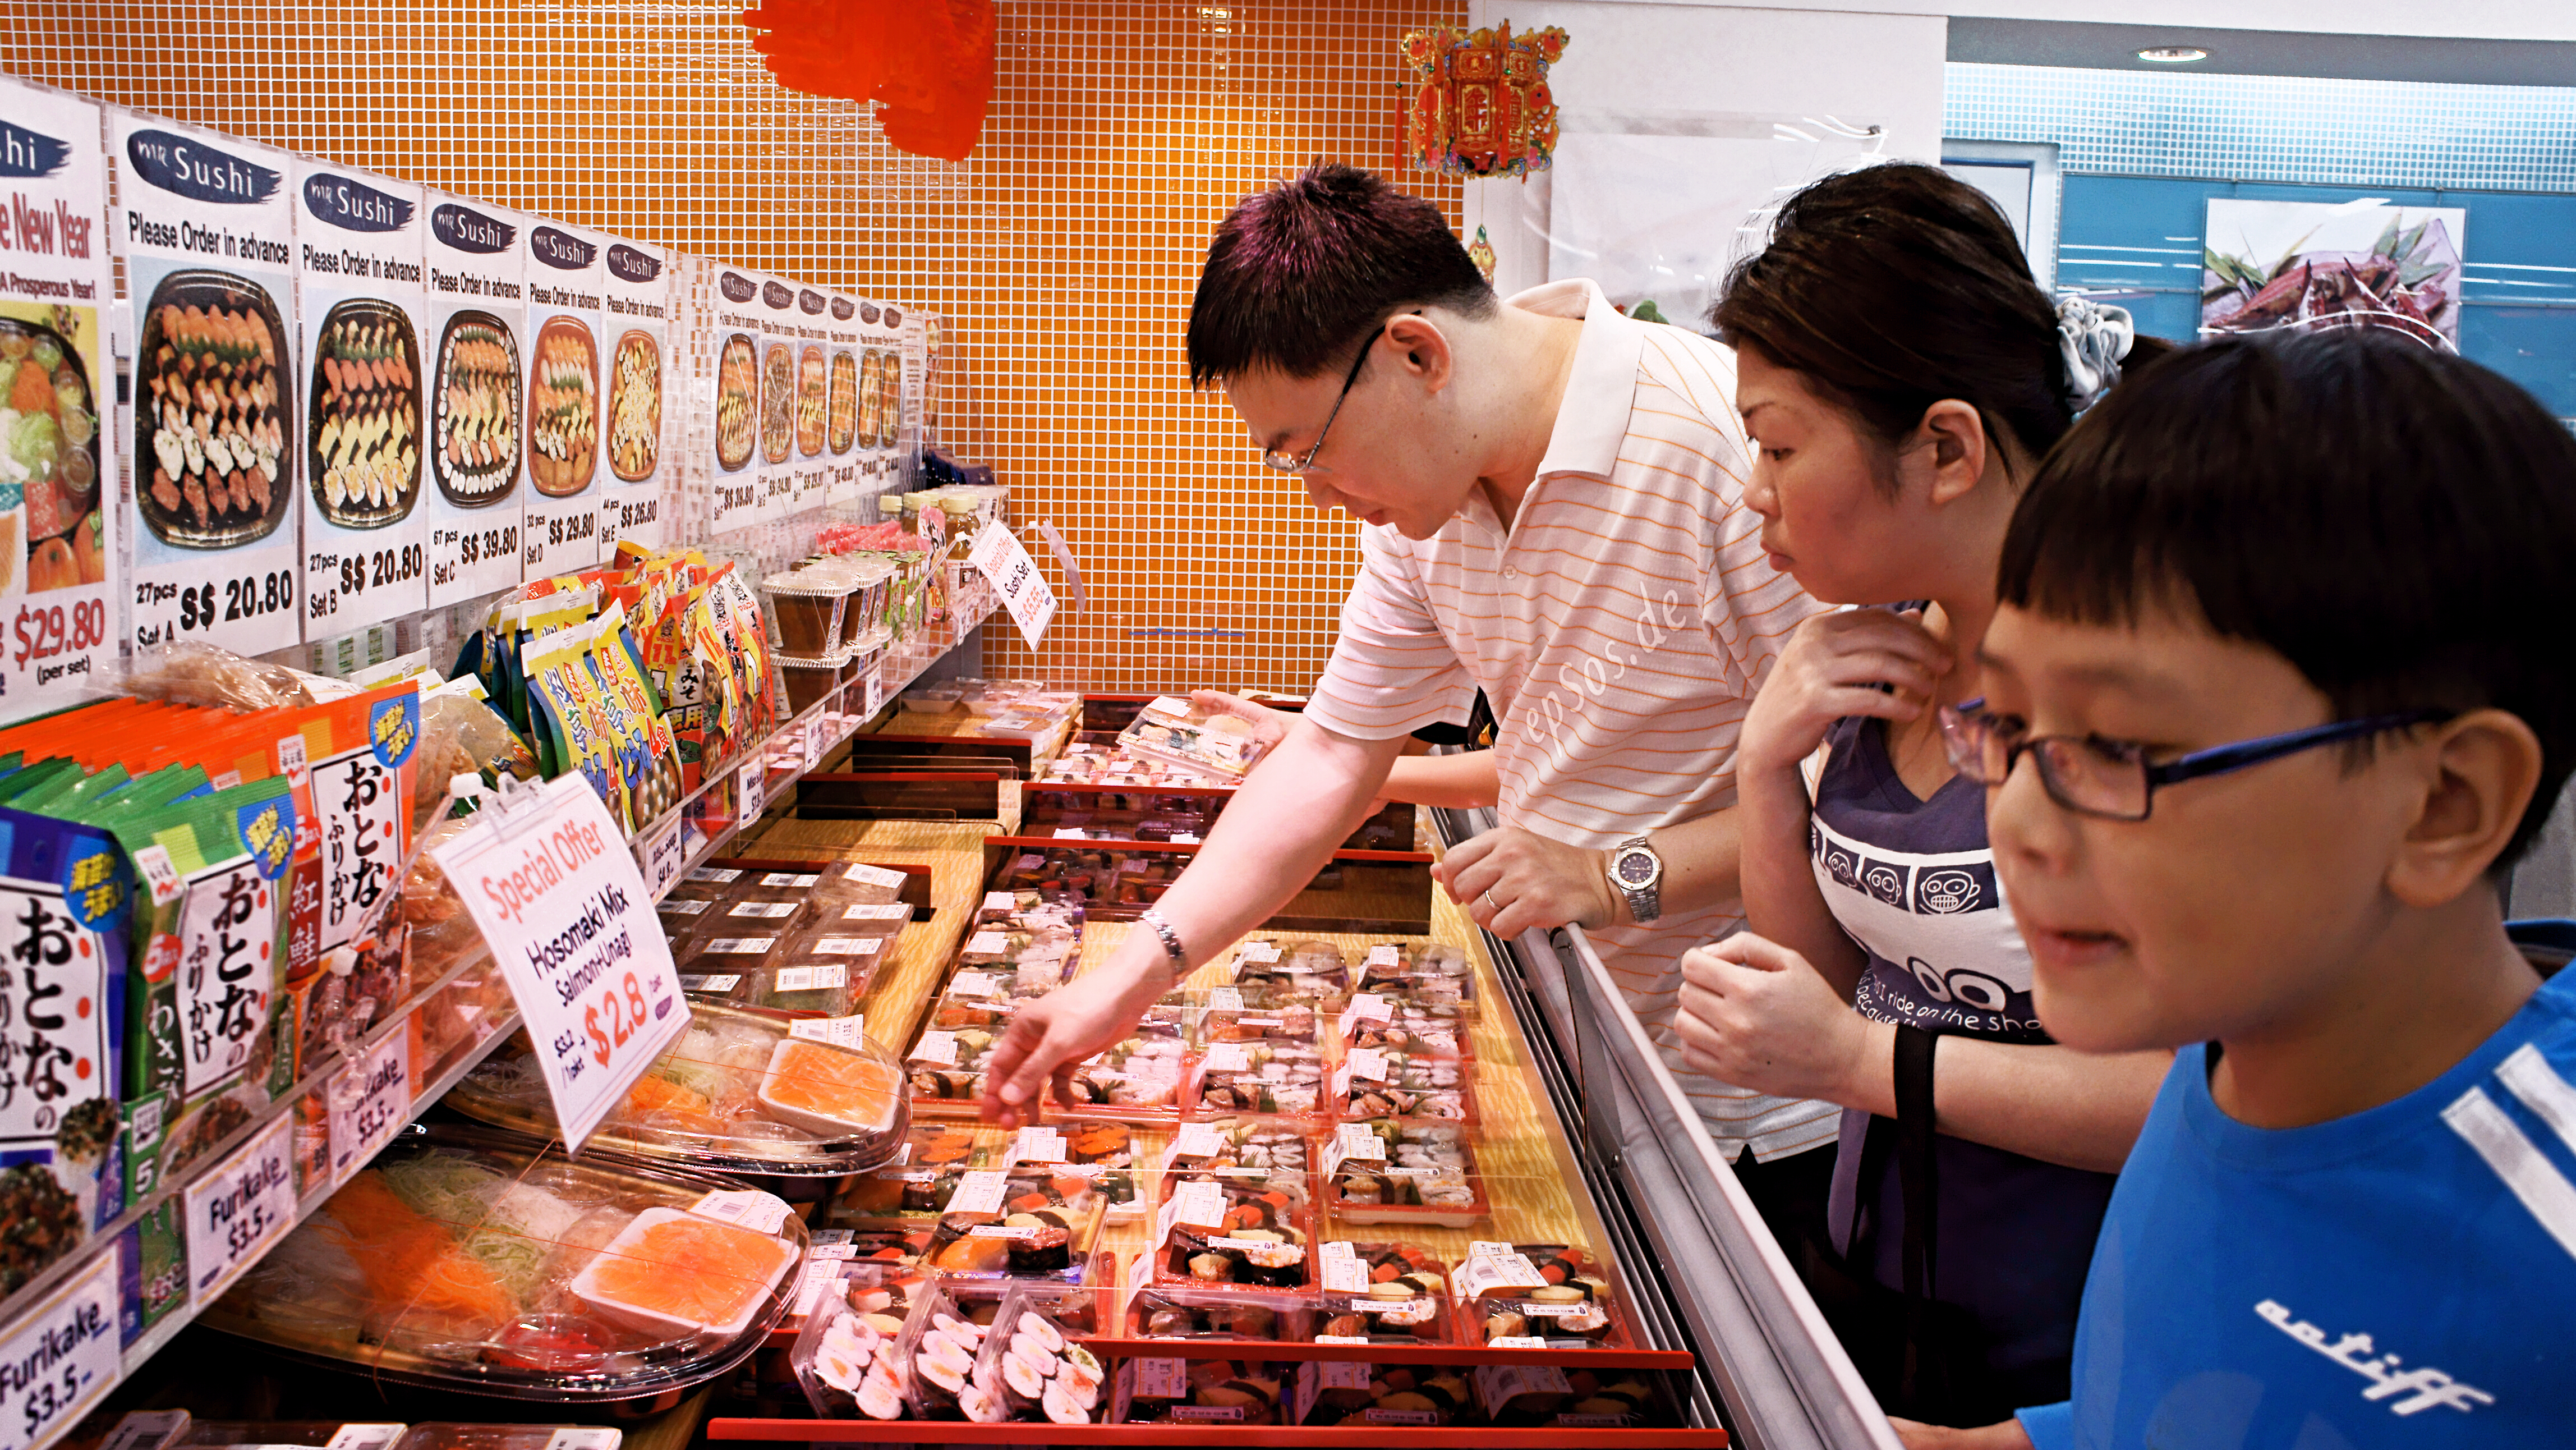 File:Asian Family Customers Shopping in The Super Market.jpg